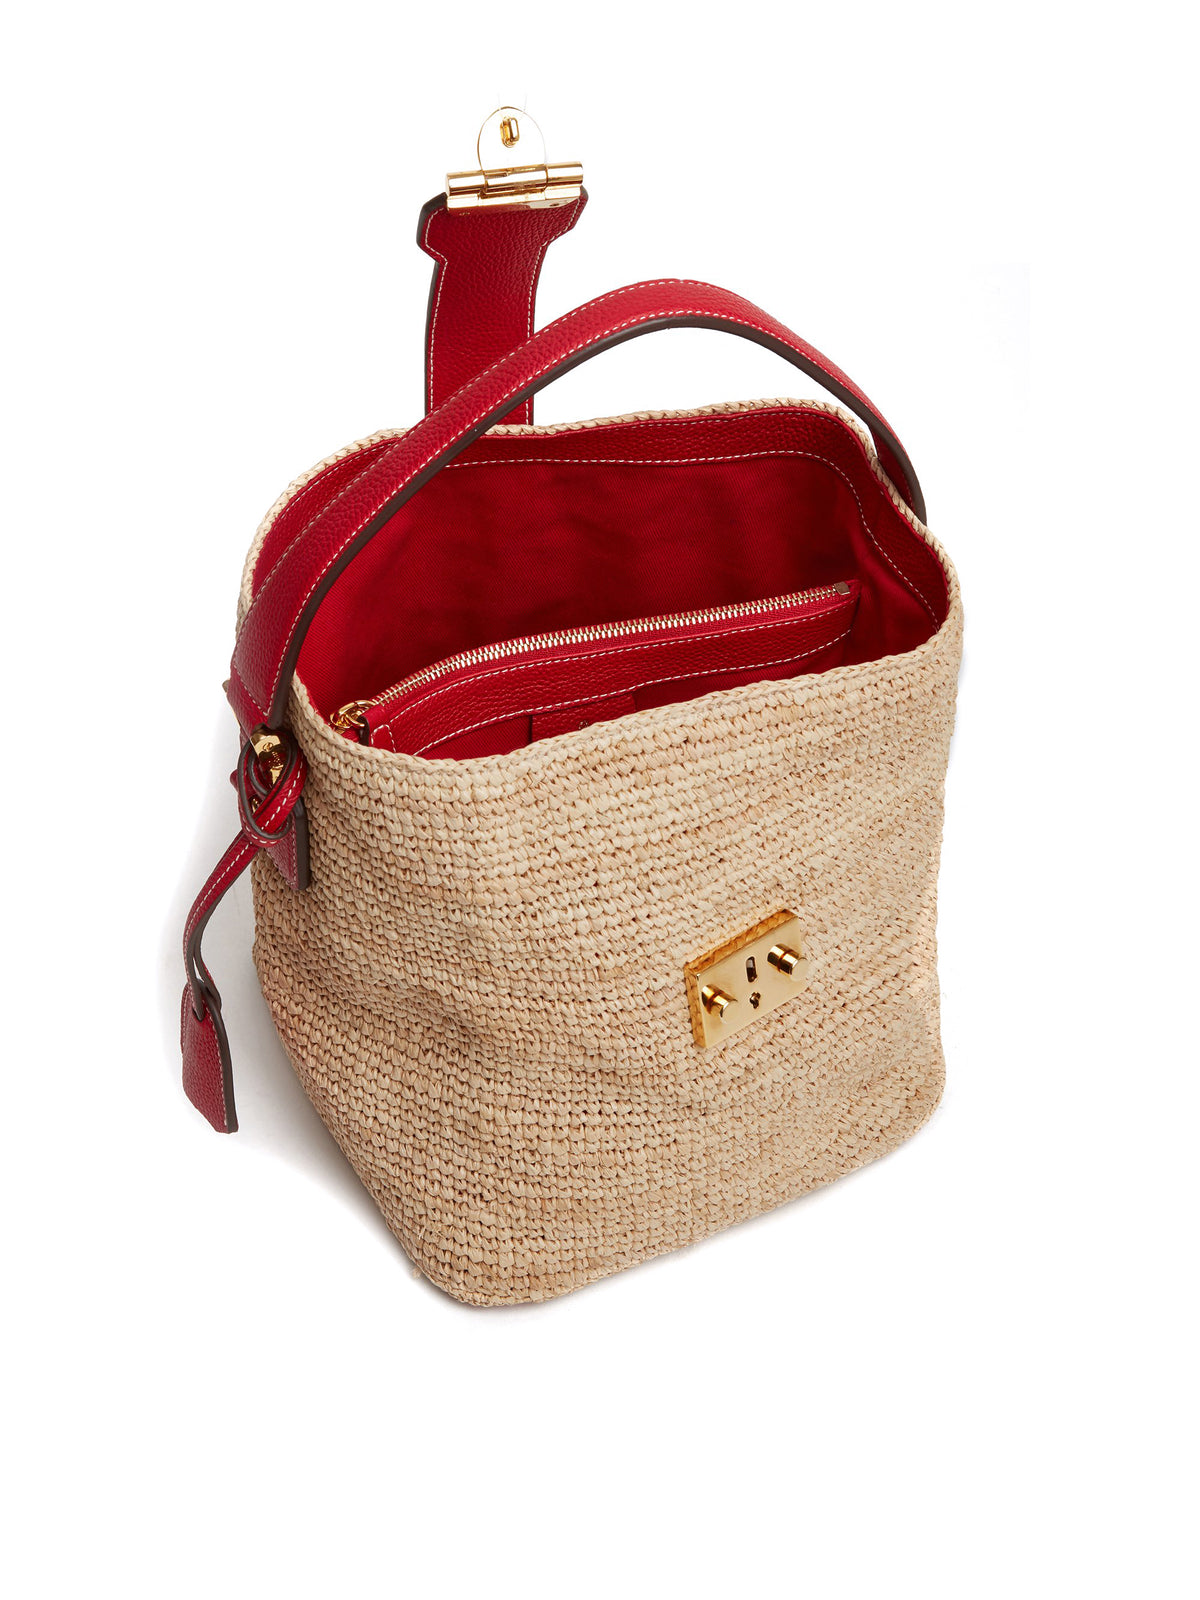 Mark Cross Murphy Raffia & Leather Bucket Bag Tumbled Grain Mc Red / Birdseye / Natural Raffia Interior